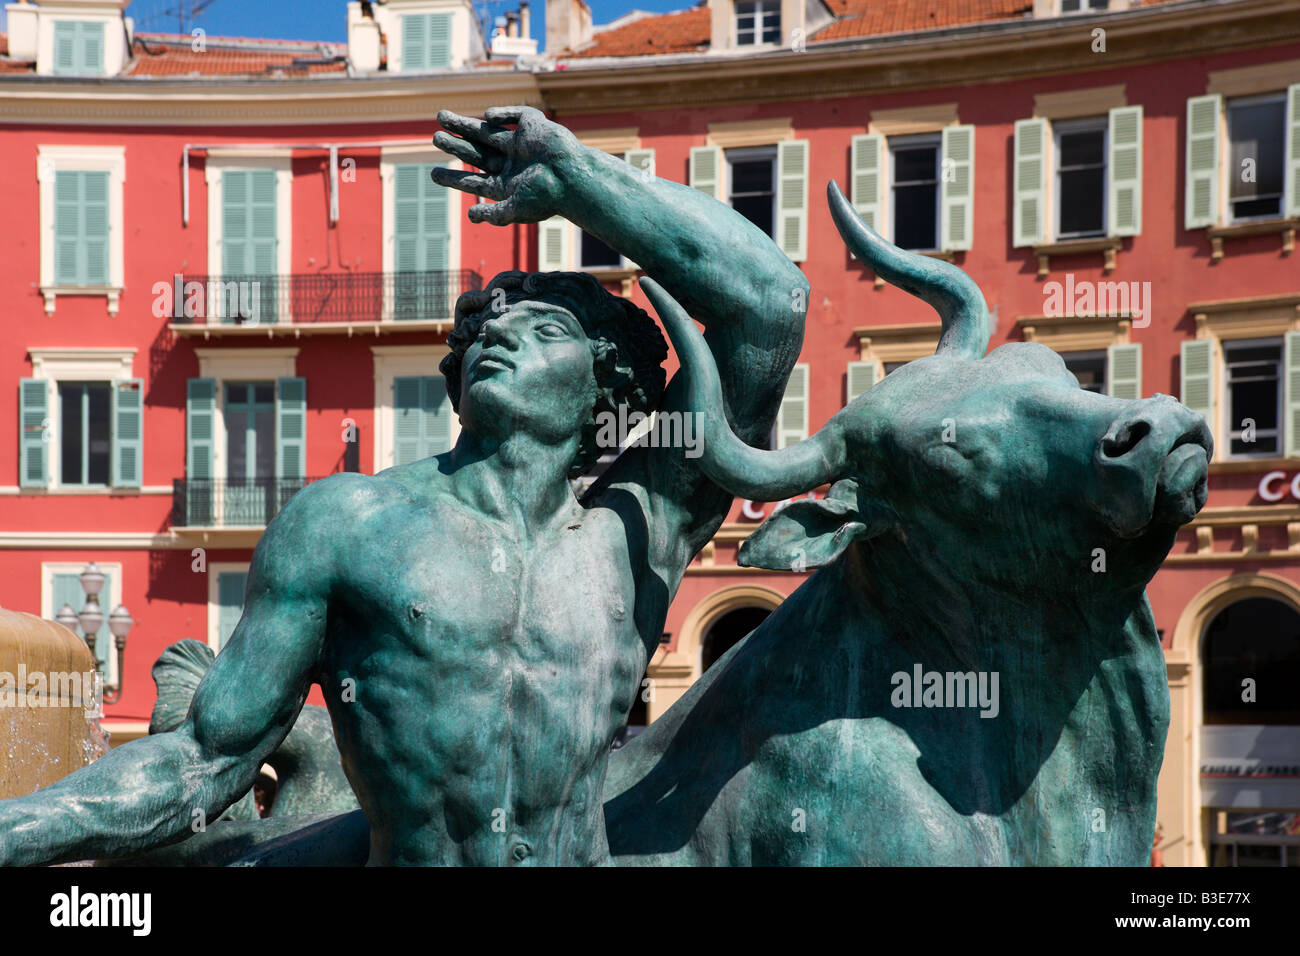 Statue on a fountain with Italianate buildings behind, Place Massena, Nice, Cote d'Azur, French Riviera, France Stock Photo